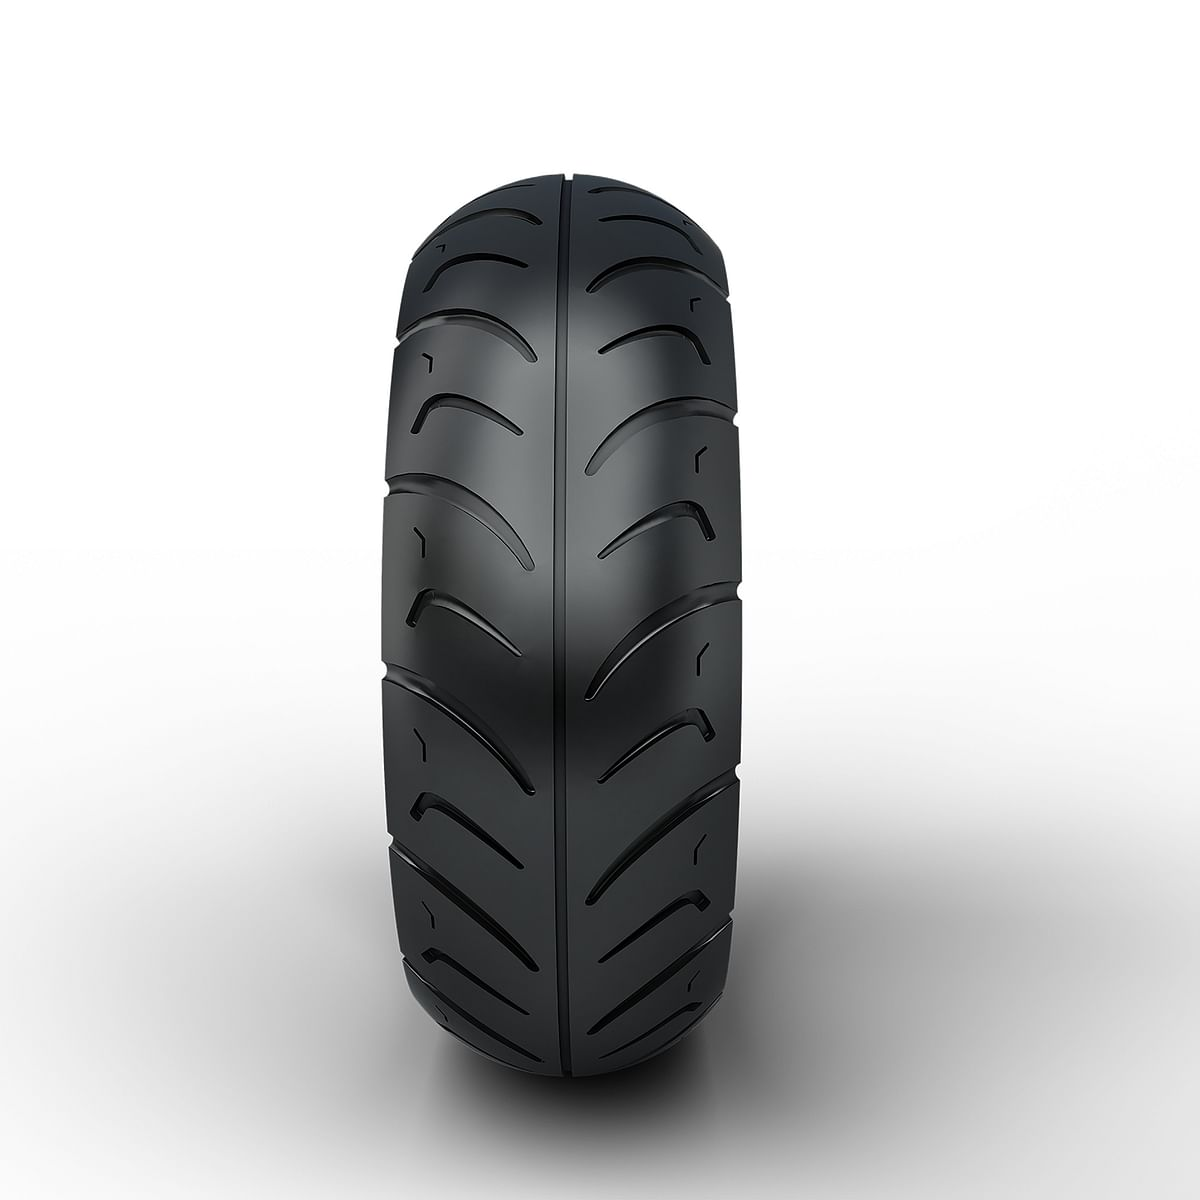 M922F tyre gets tread pattern along circumference and by sides as well that works in conjuction superior grip